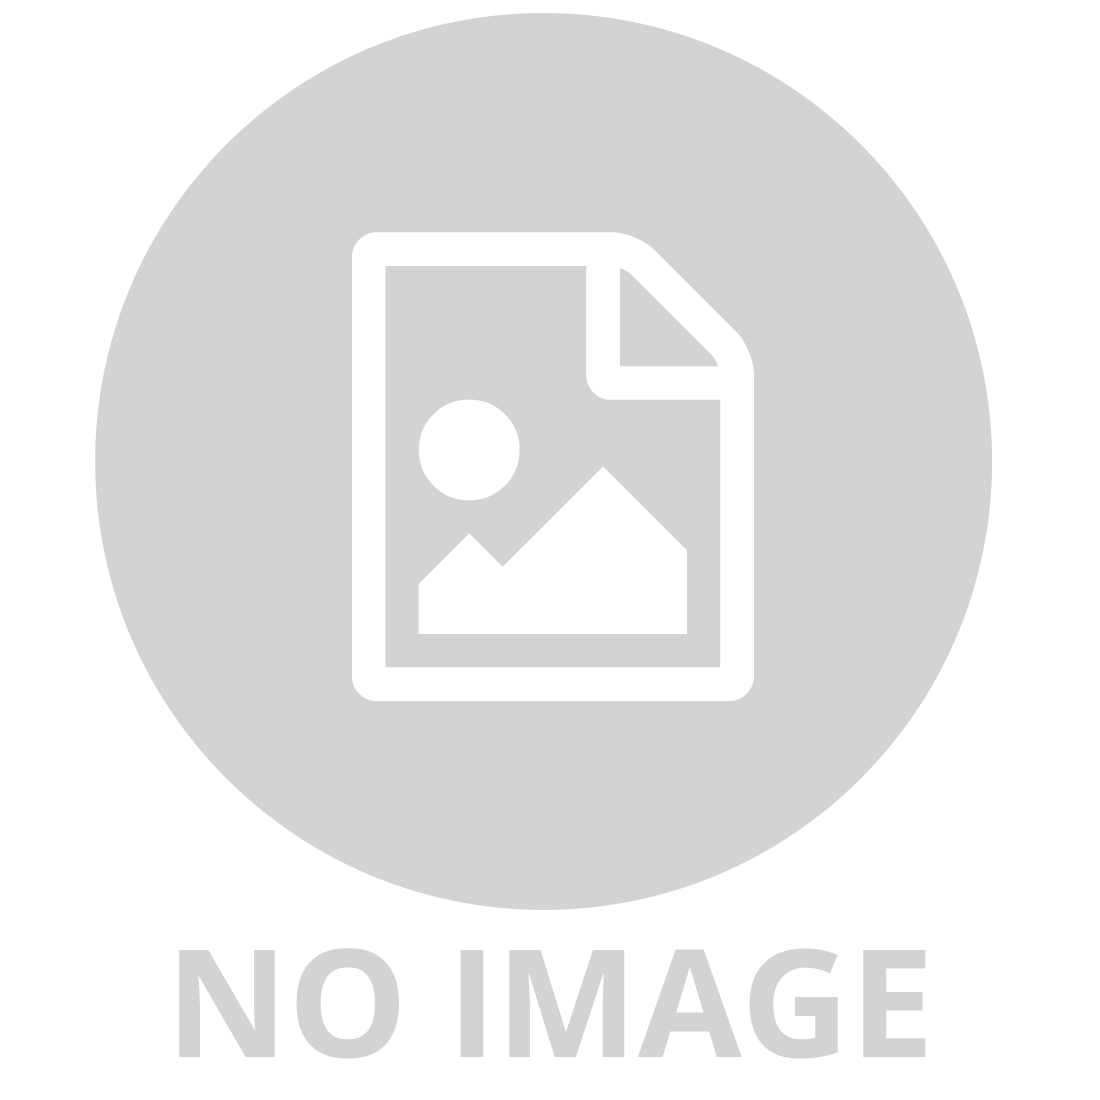 TAMIYA TS 50 MICA BLUE SPRAY PAINT FOR PLASTICS